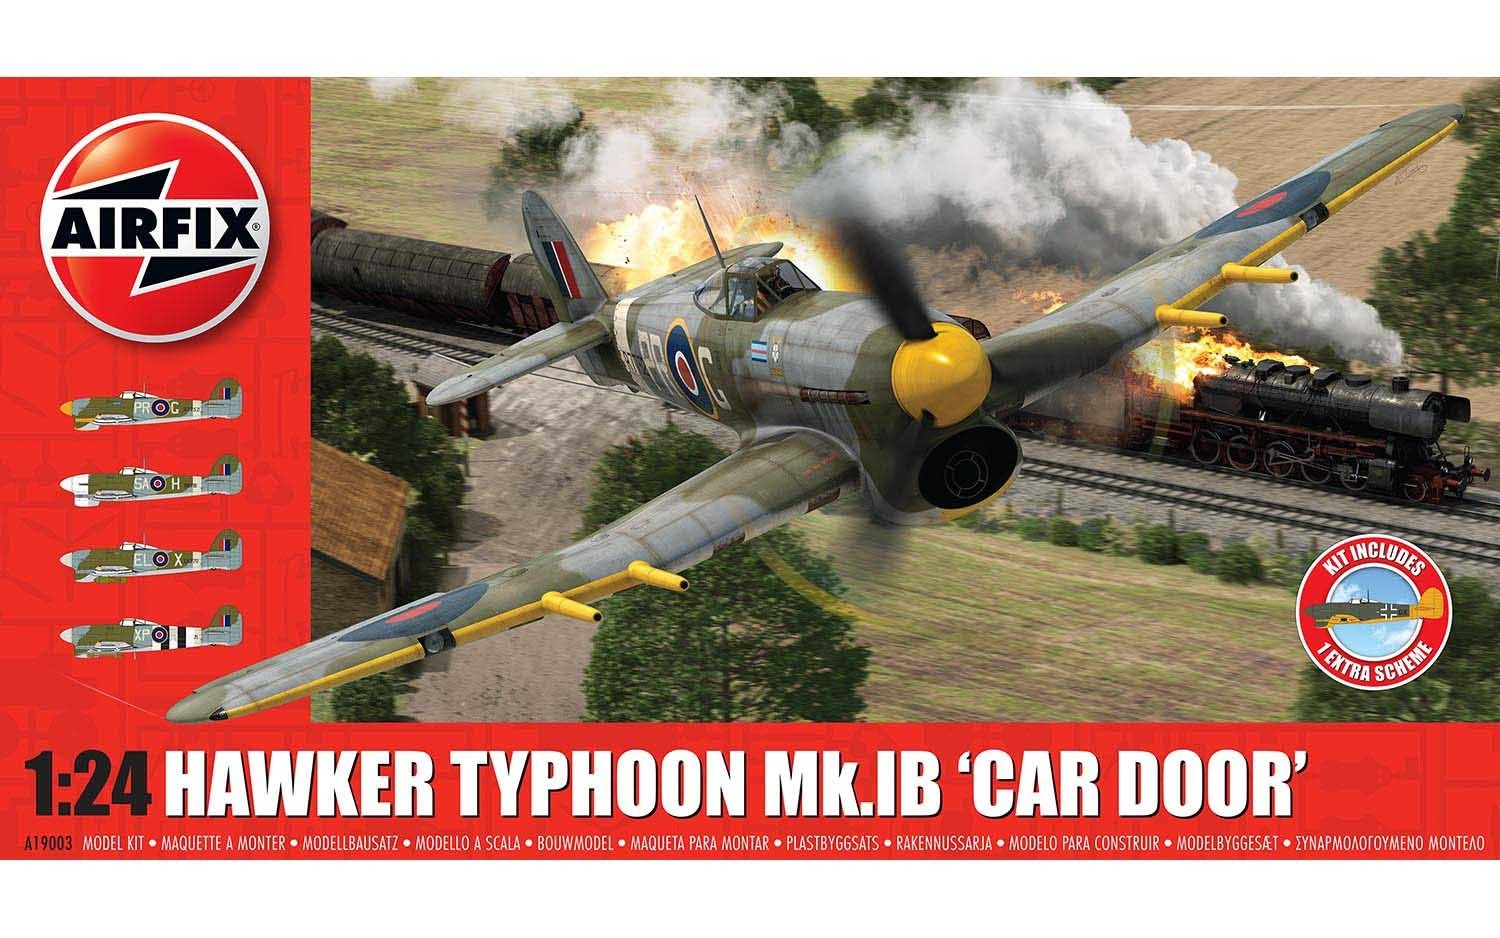 Hawker Typhoon Mk.1B - Car Door